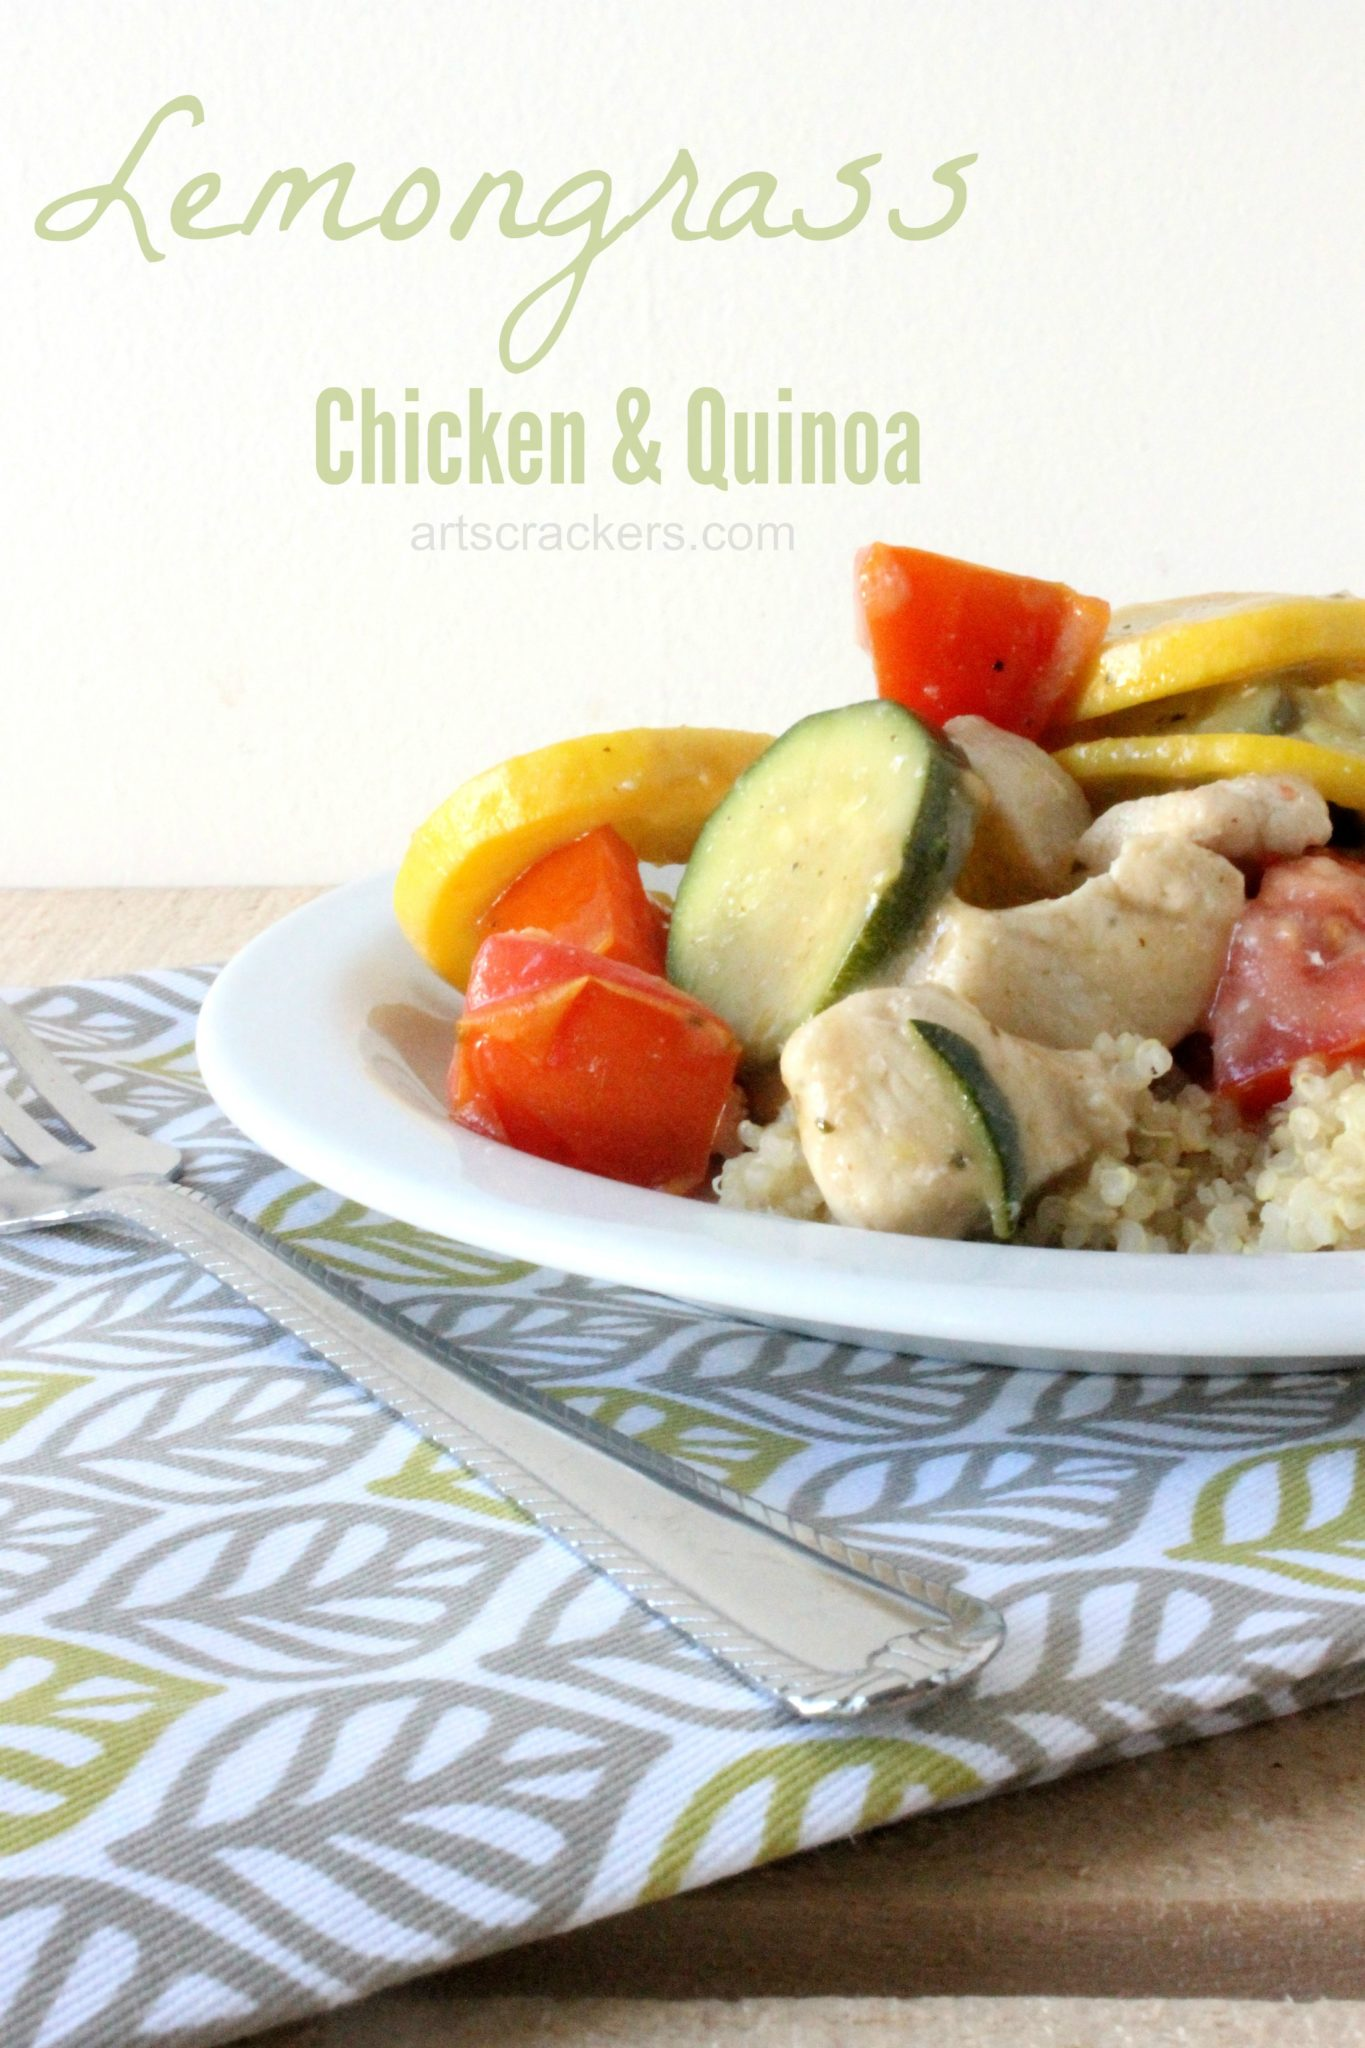 Lemongrass and Basil Chicken and Quinoa